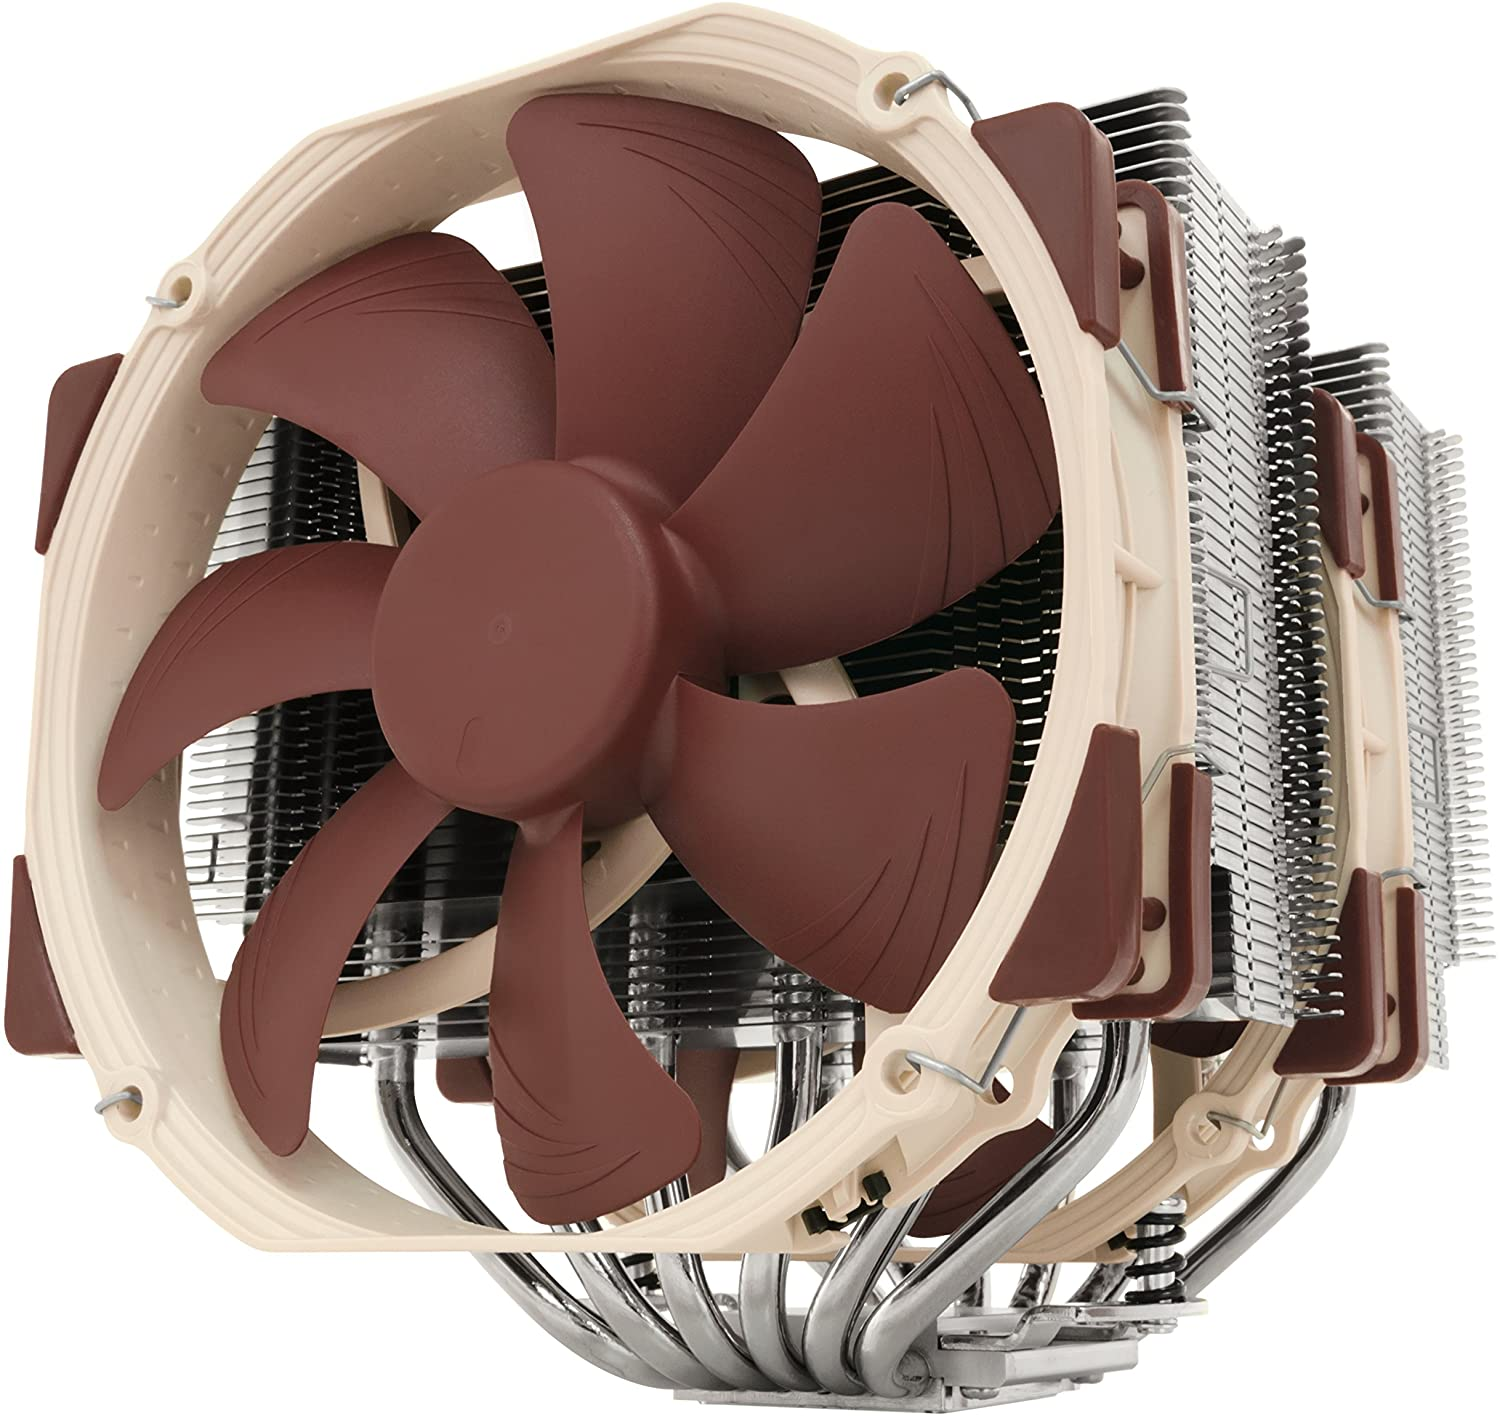 5 best CPU coolers for Ryzen 7 2700x: Reviews for 2021